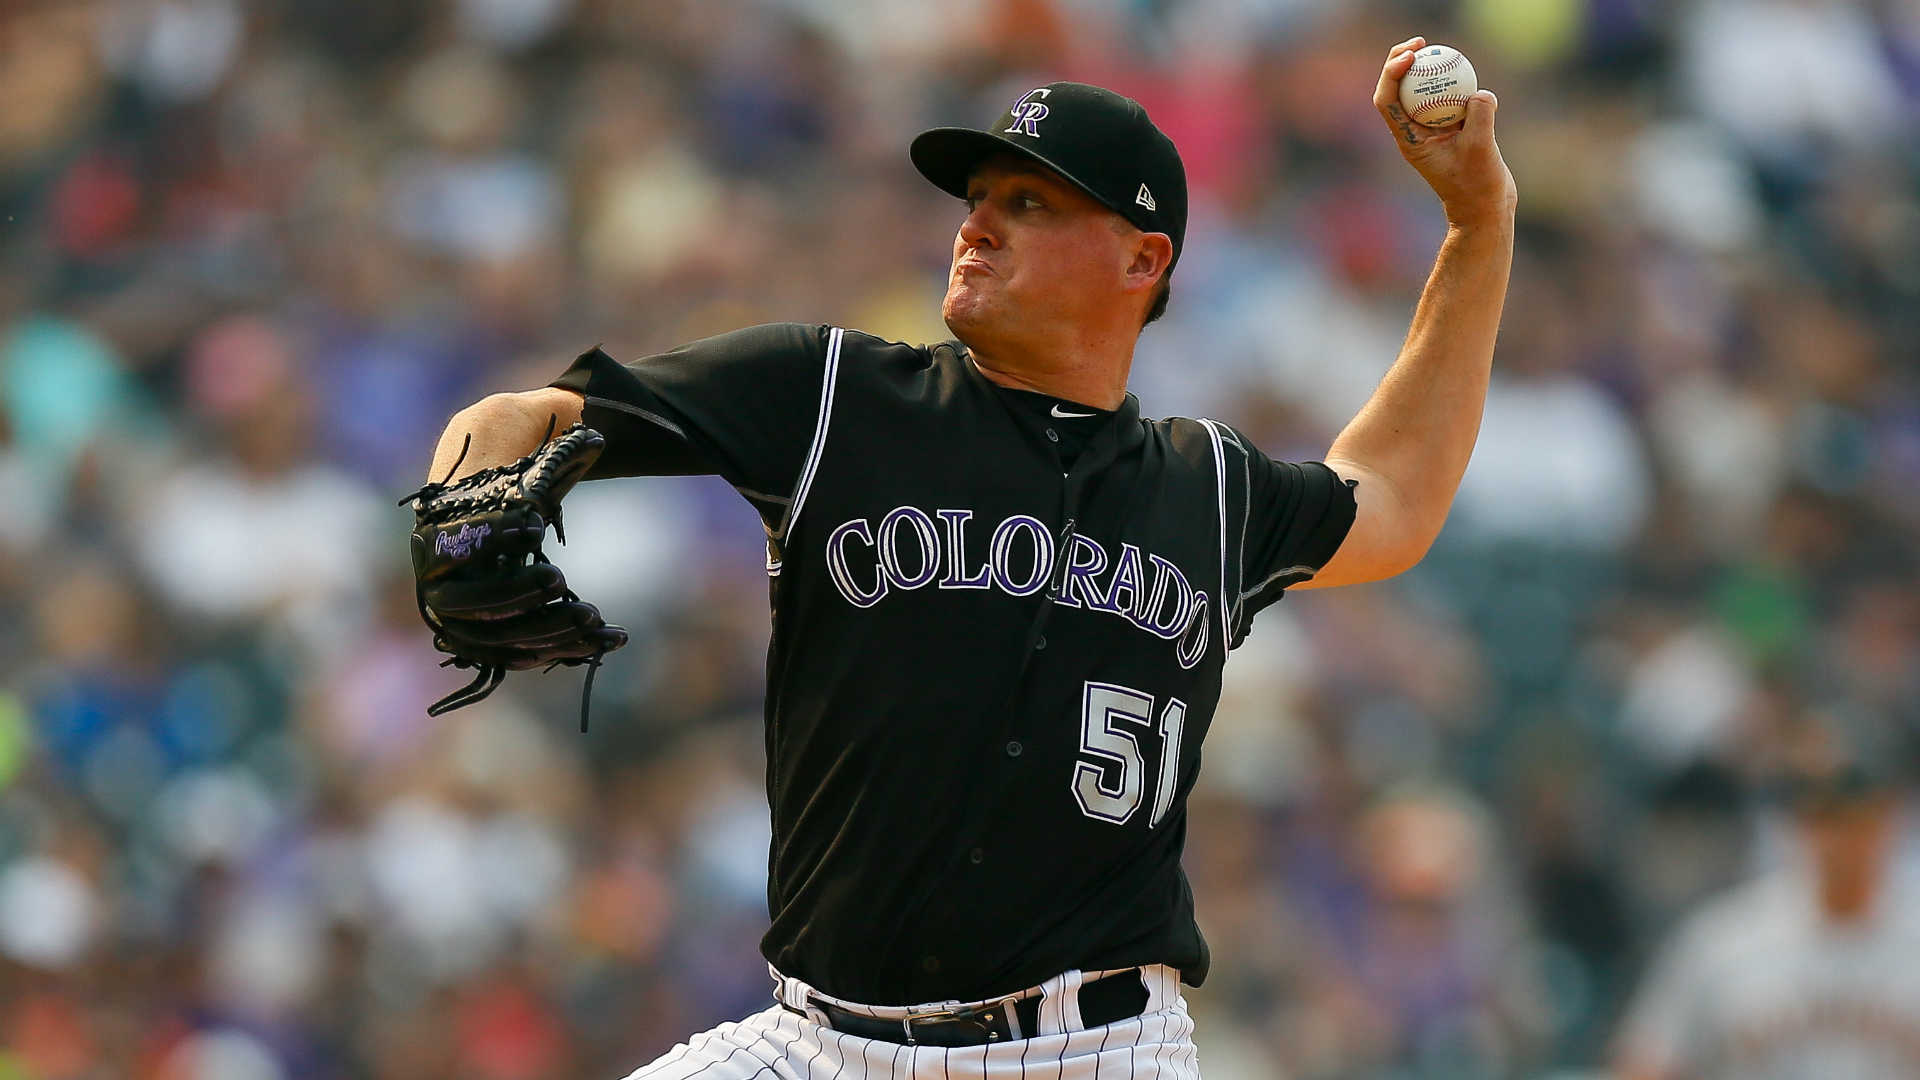 MLB free agent rumors: Rockies follow Bryan Shaw deal by keeping Jake McGee for bullpen, too